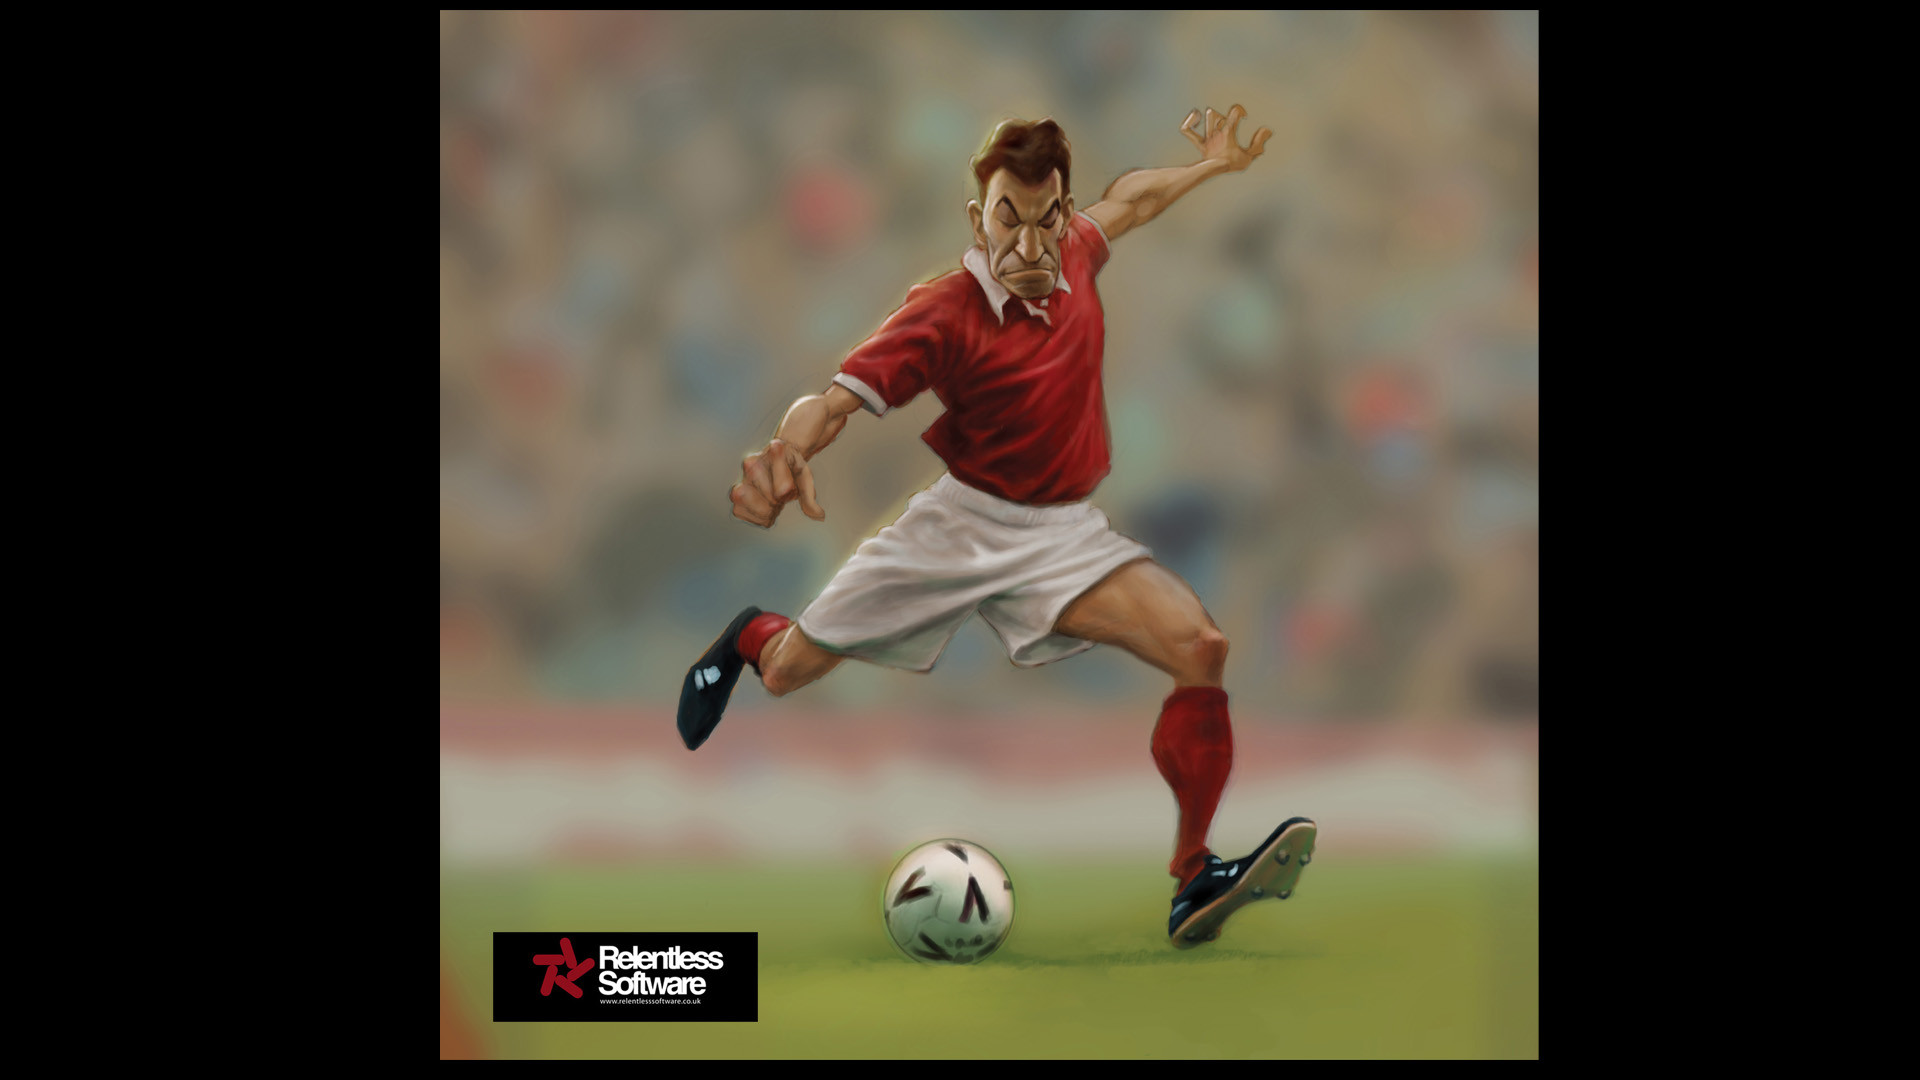 Mark montague aspectratio footy 72dpi